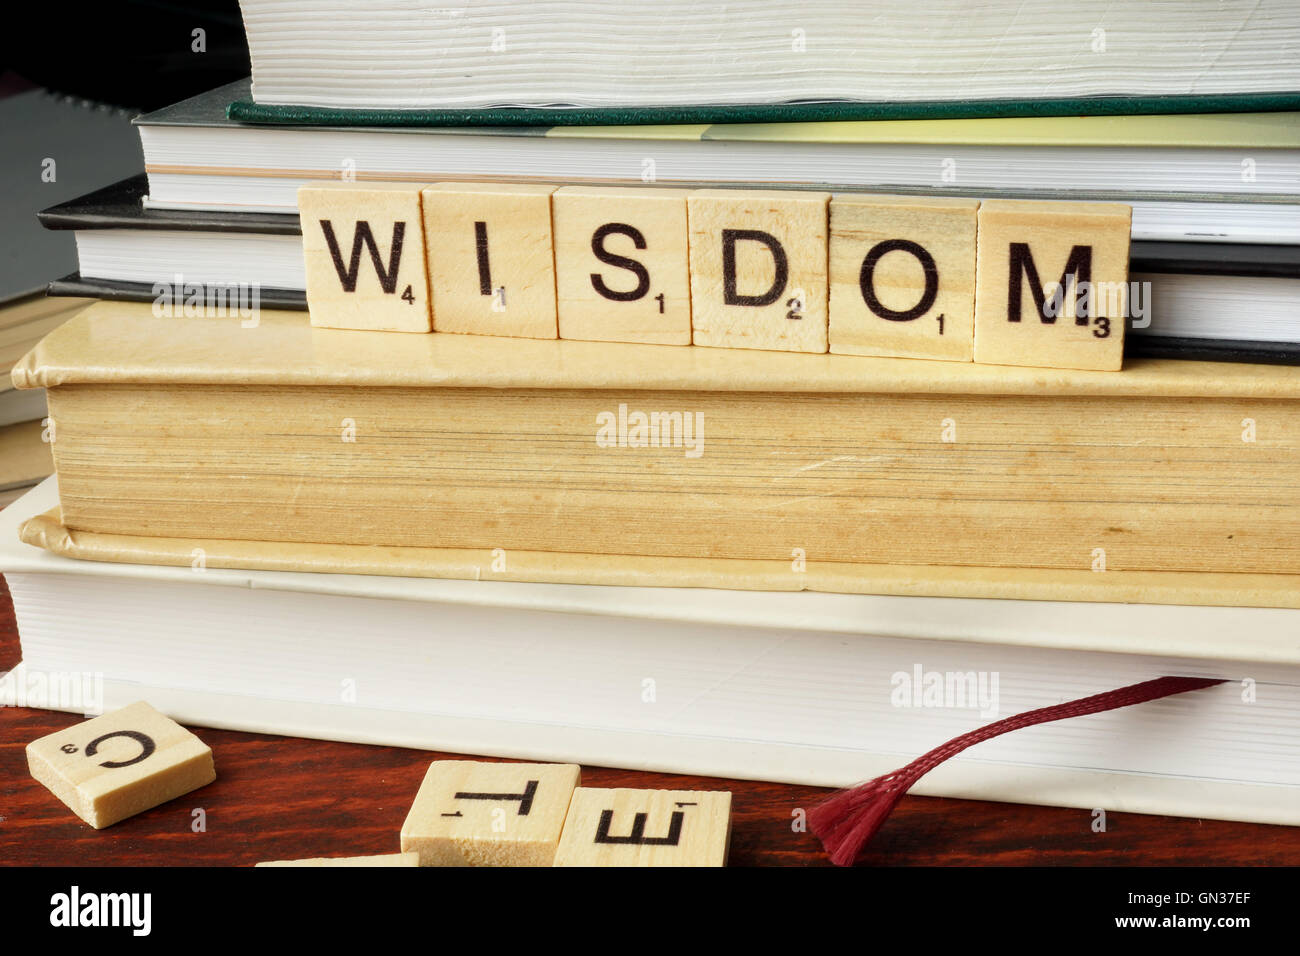 Word Wisdom from wooden blocks with letters. - Stock Image